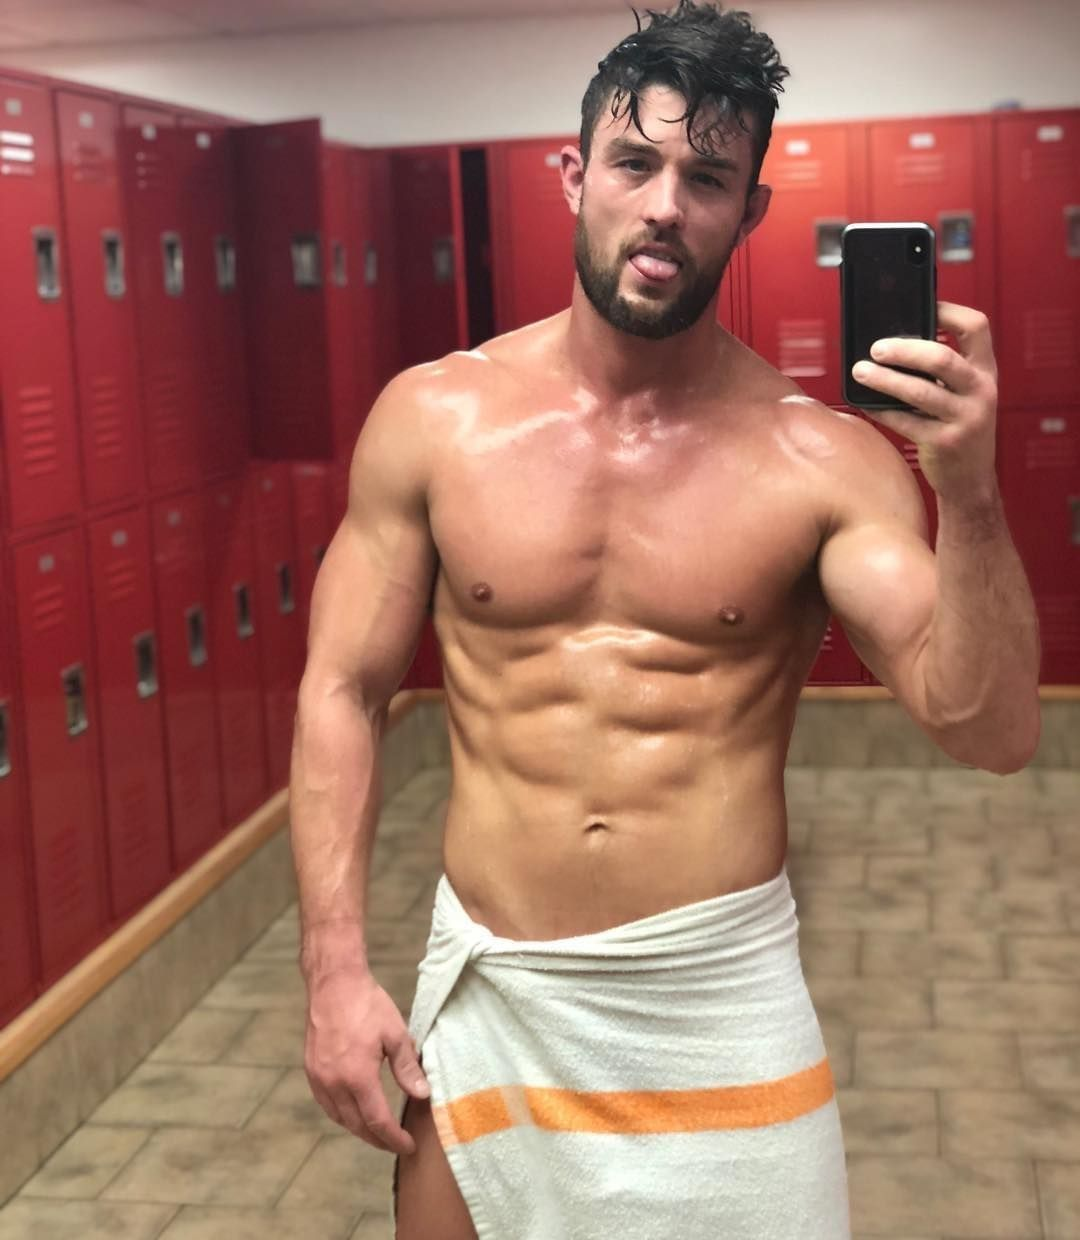 @ryanroseofficial wet and in a towel is all we could ever ask for